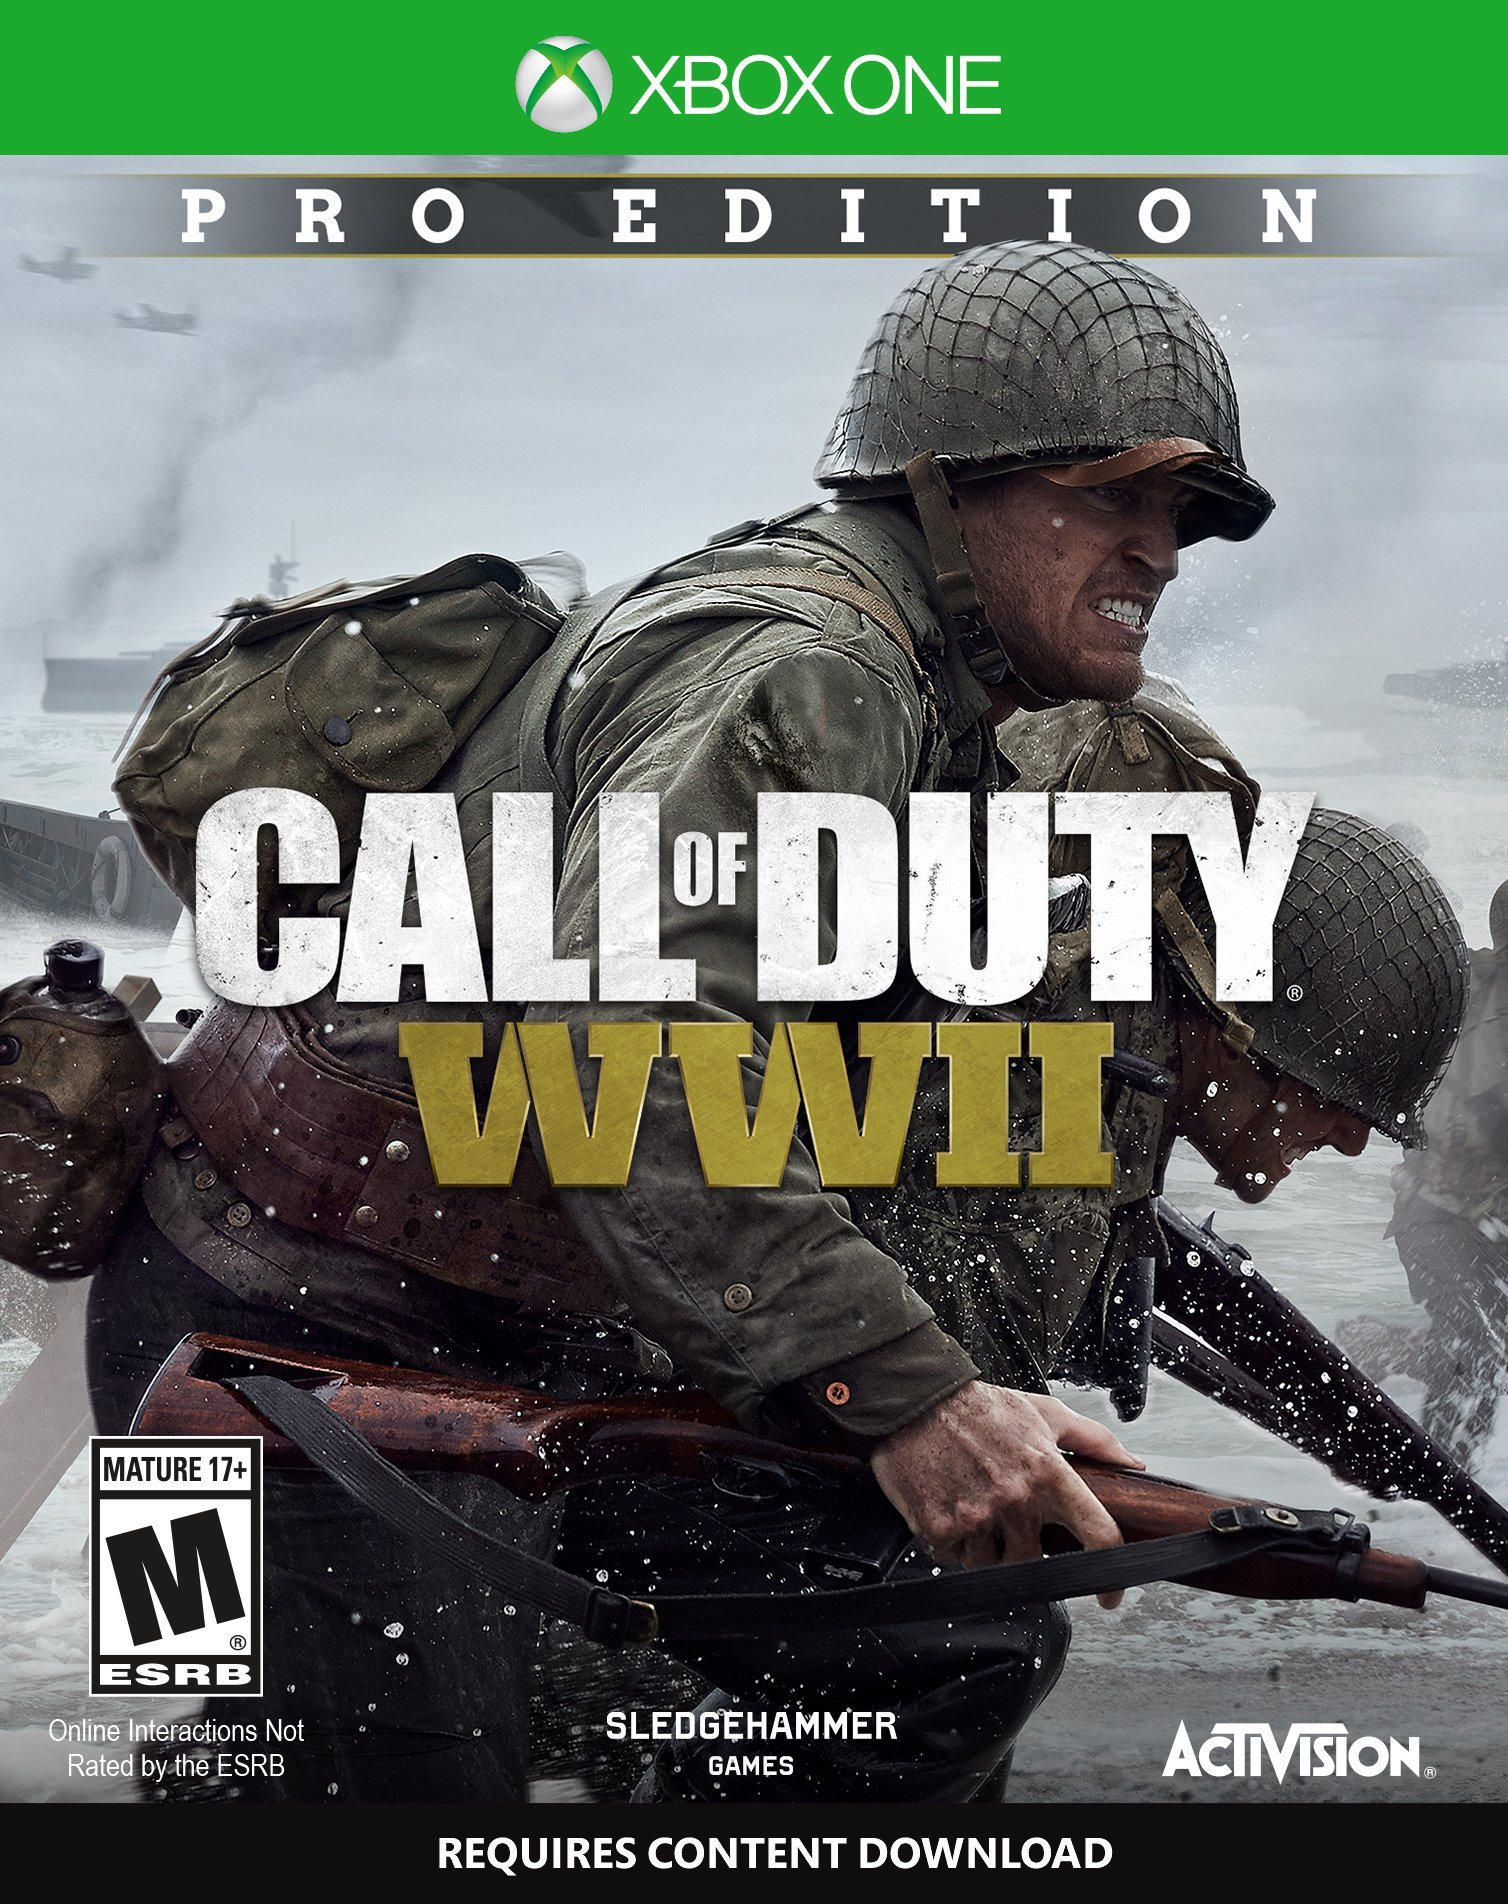 Call of Duty: WWII Pro Edition